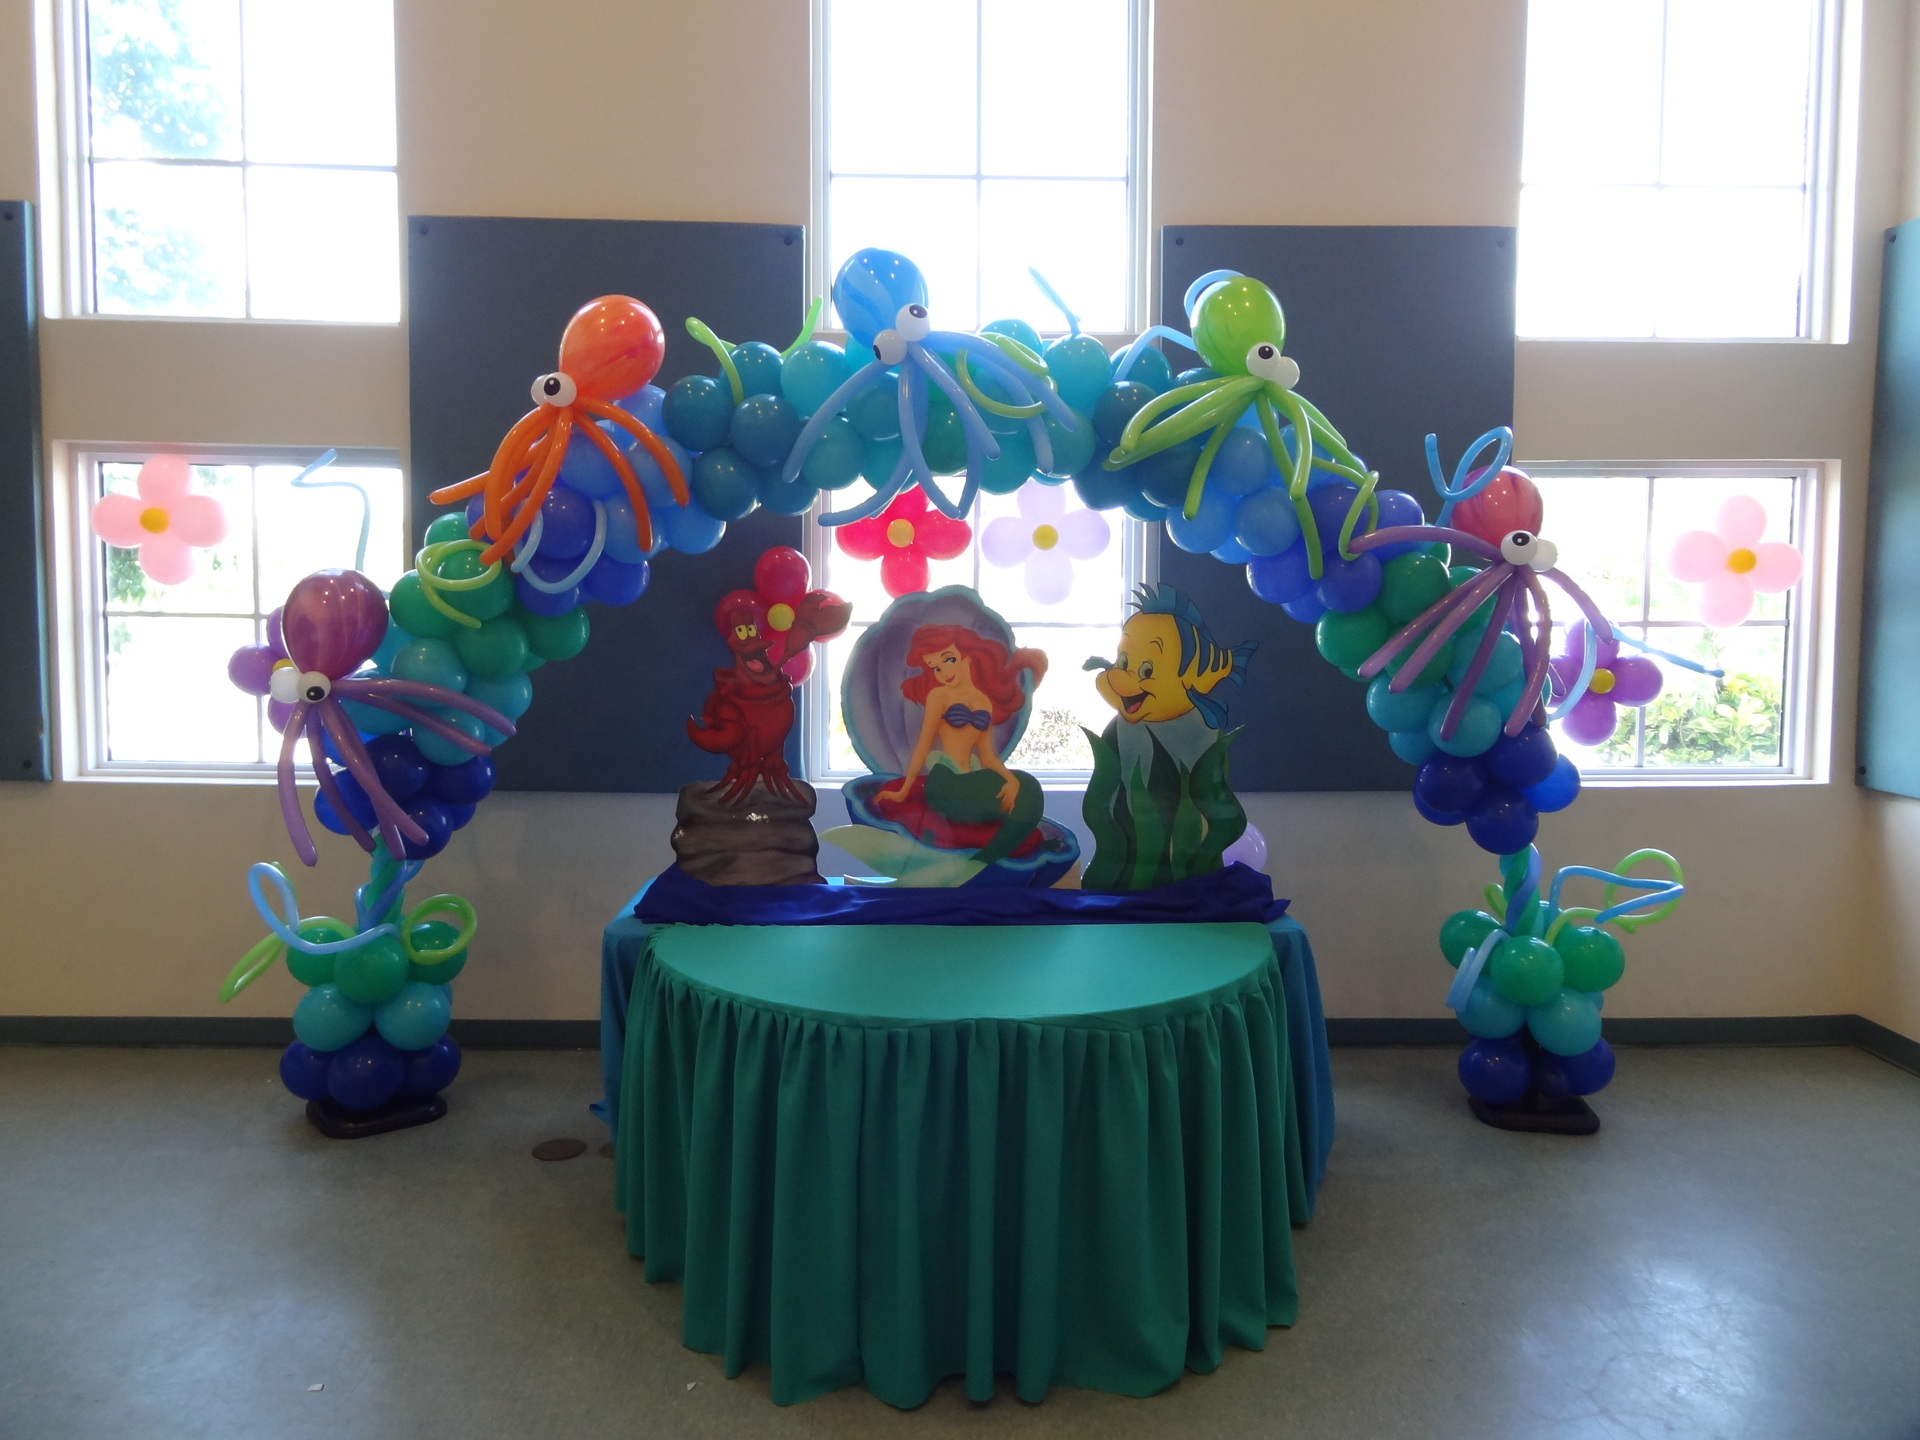 chiavari rental chairs rolling atlantic city party little mermaid -ariel decoration